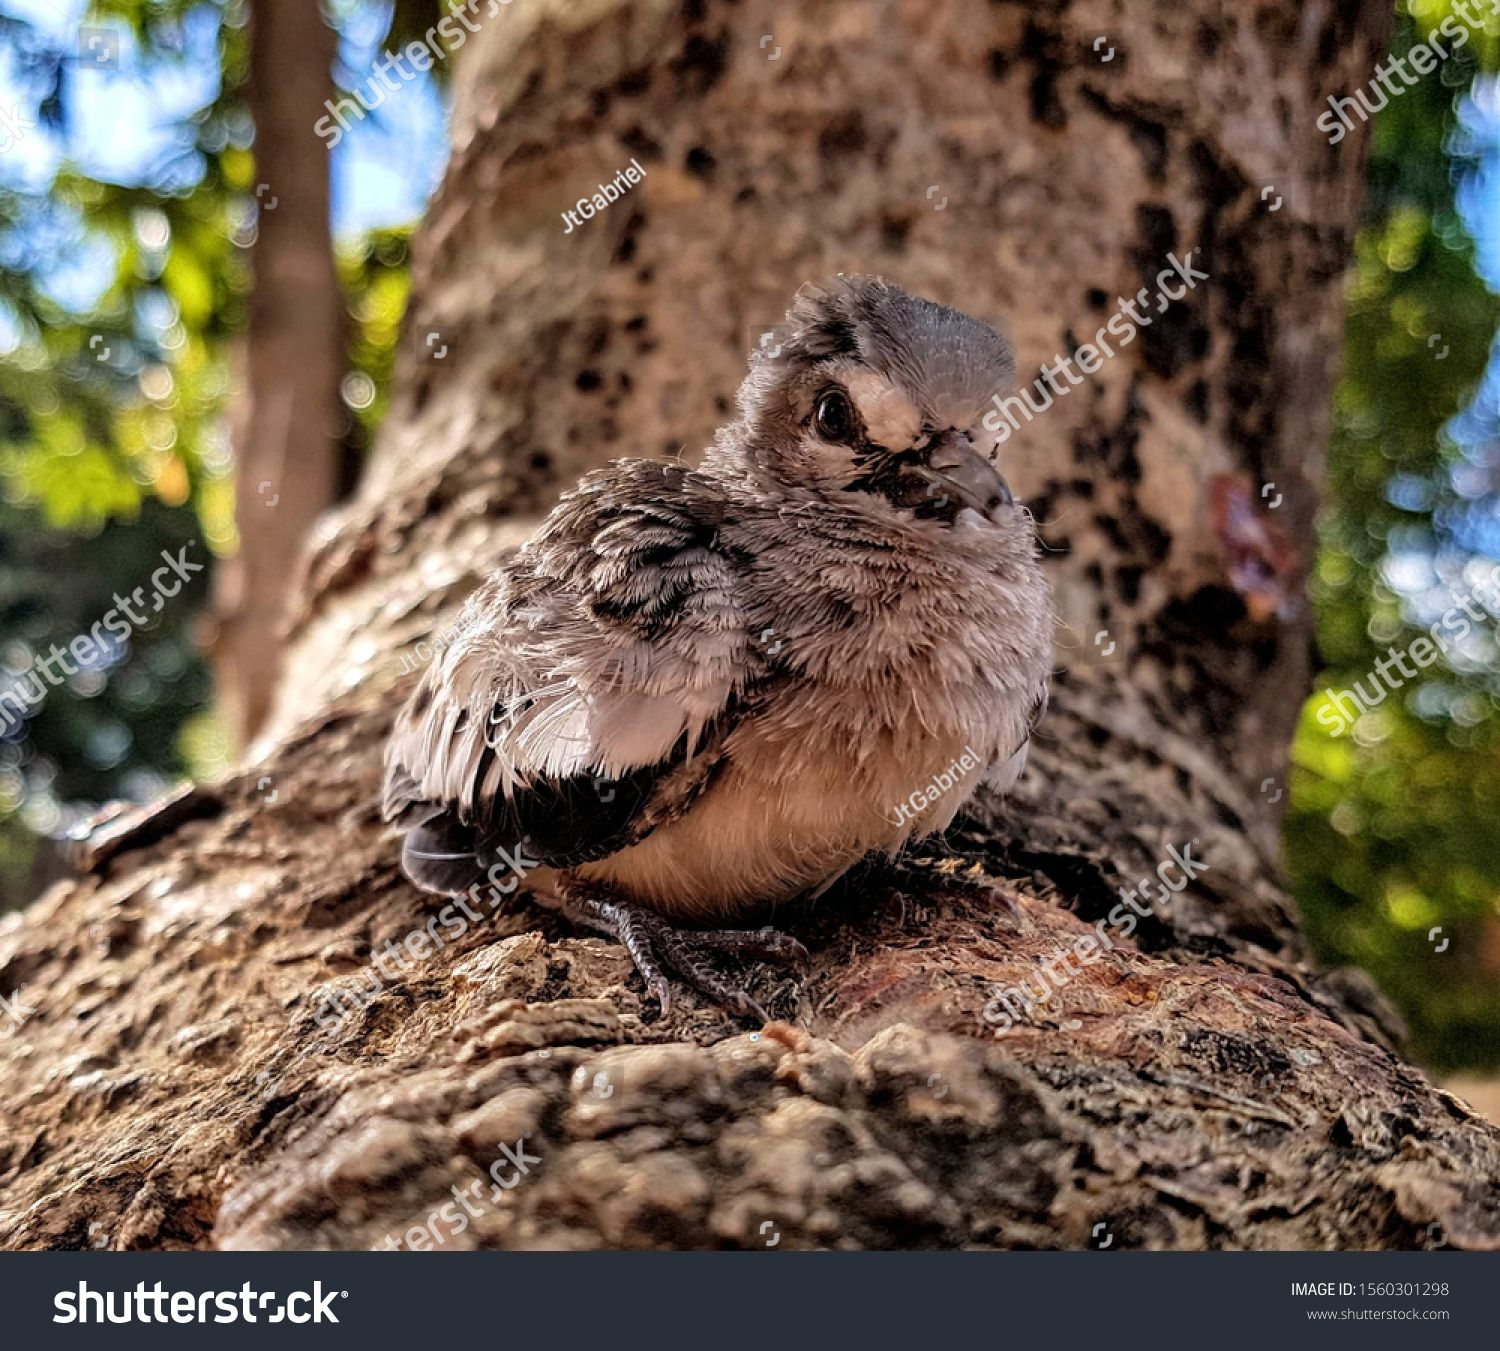 Little baby bird learning how to fly #Ad , #AD, #bird#baby ...